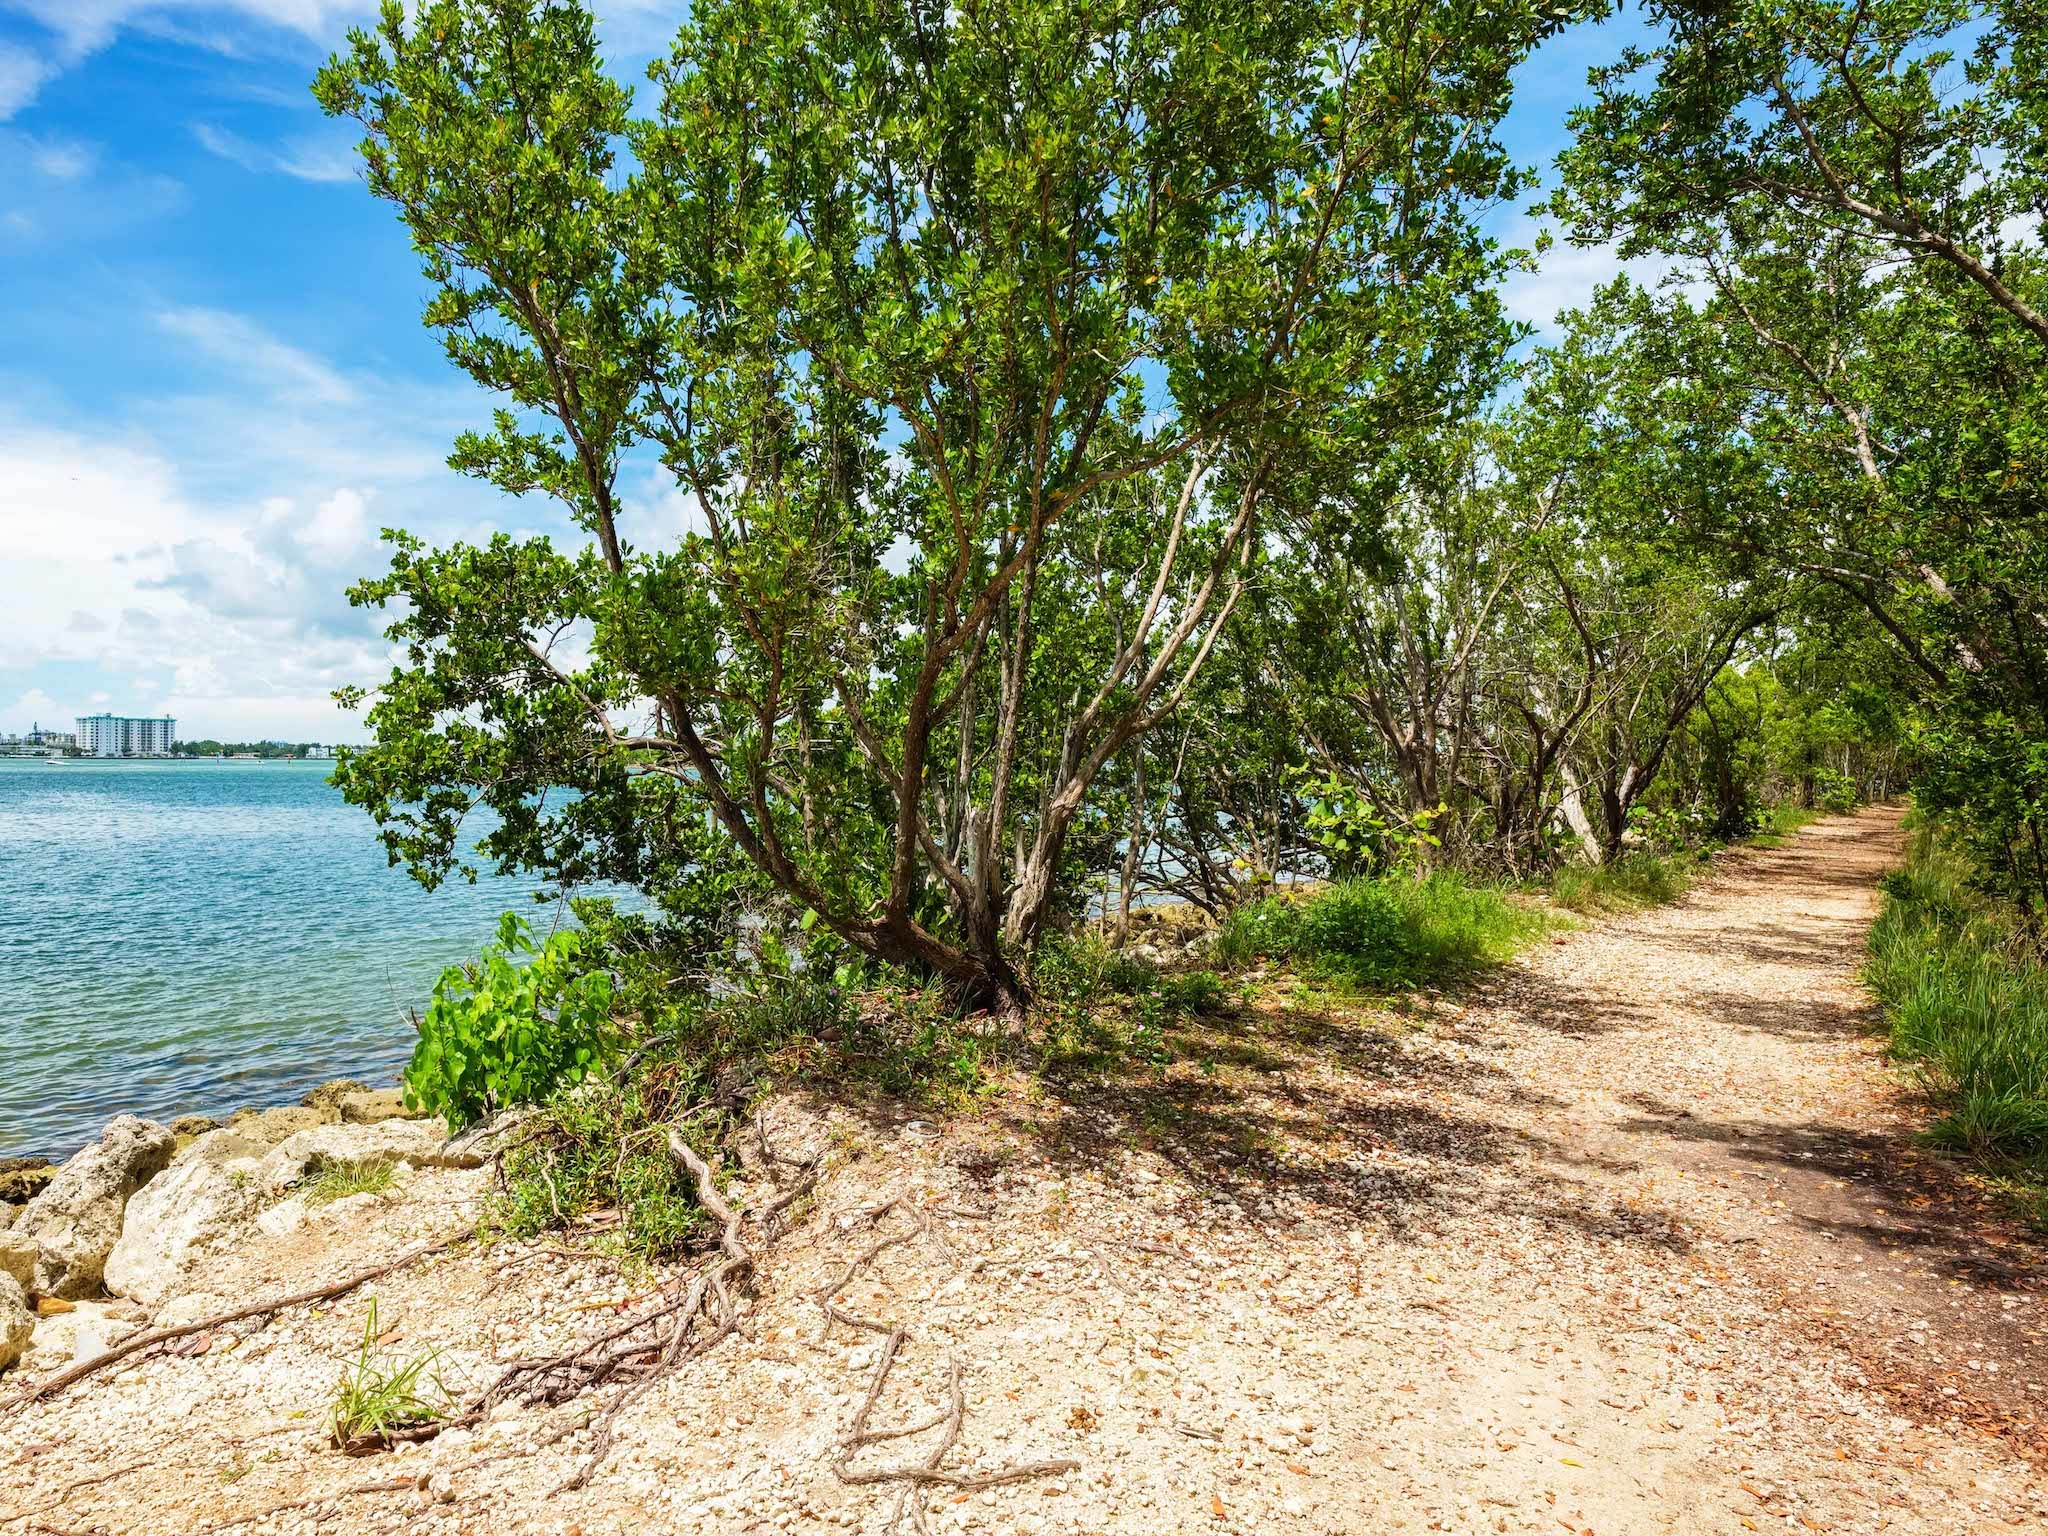 The best spots for hiking in Miami